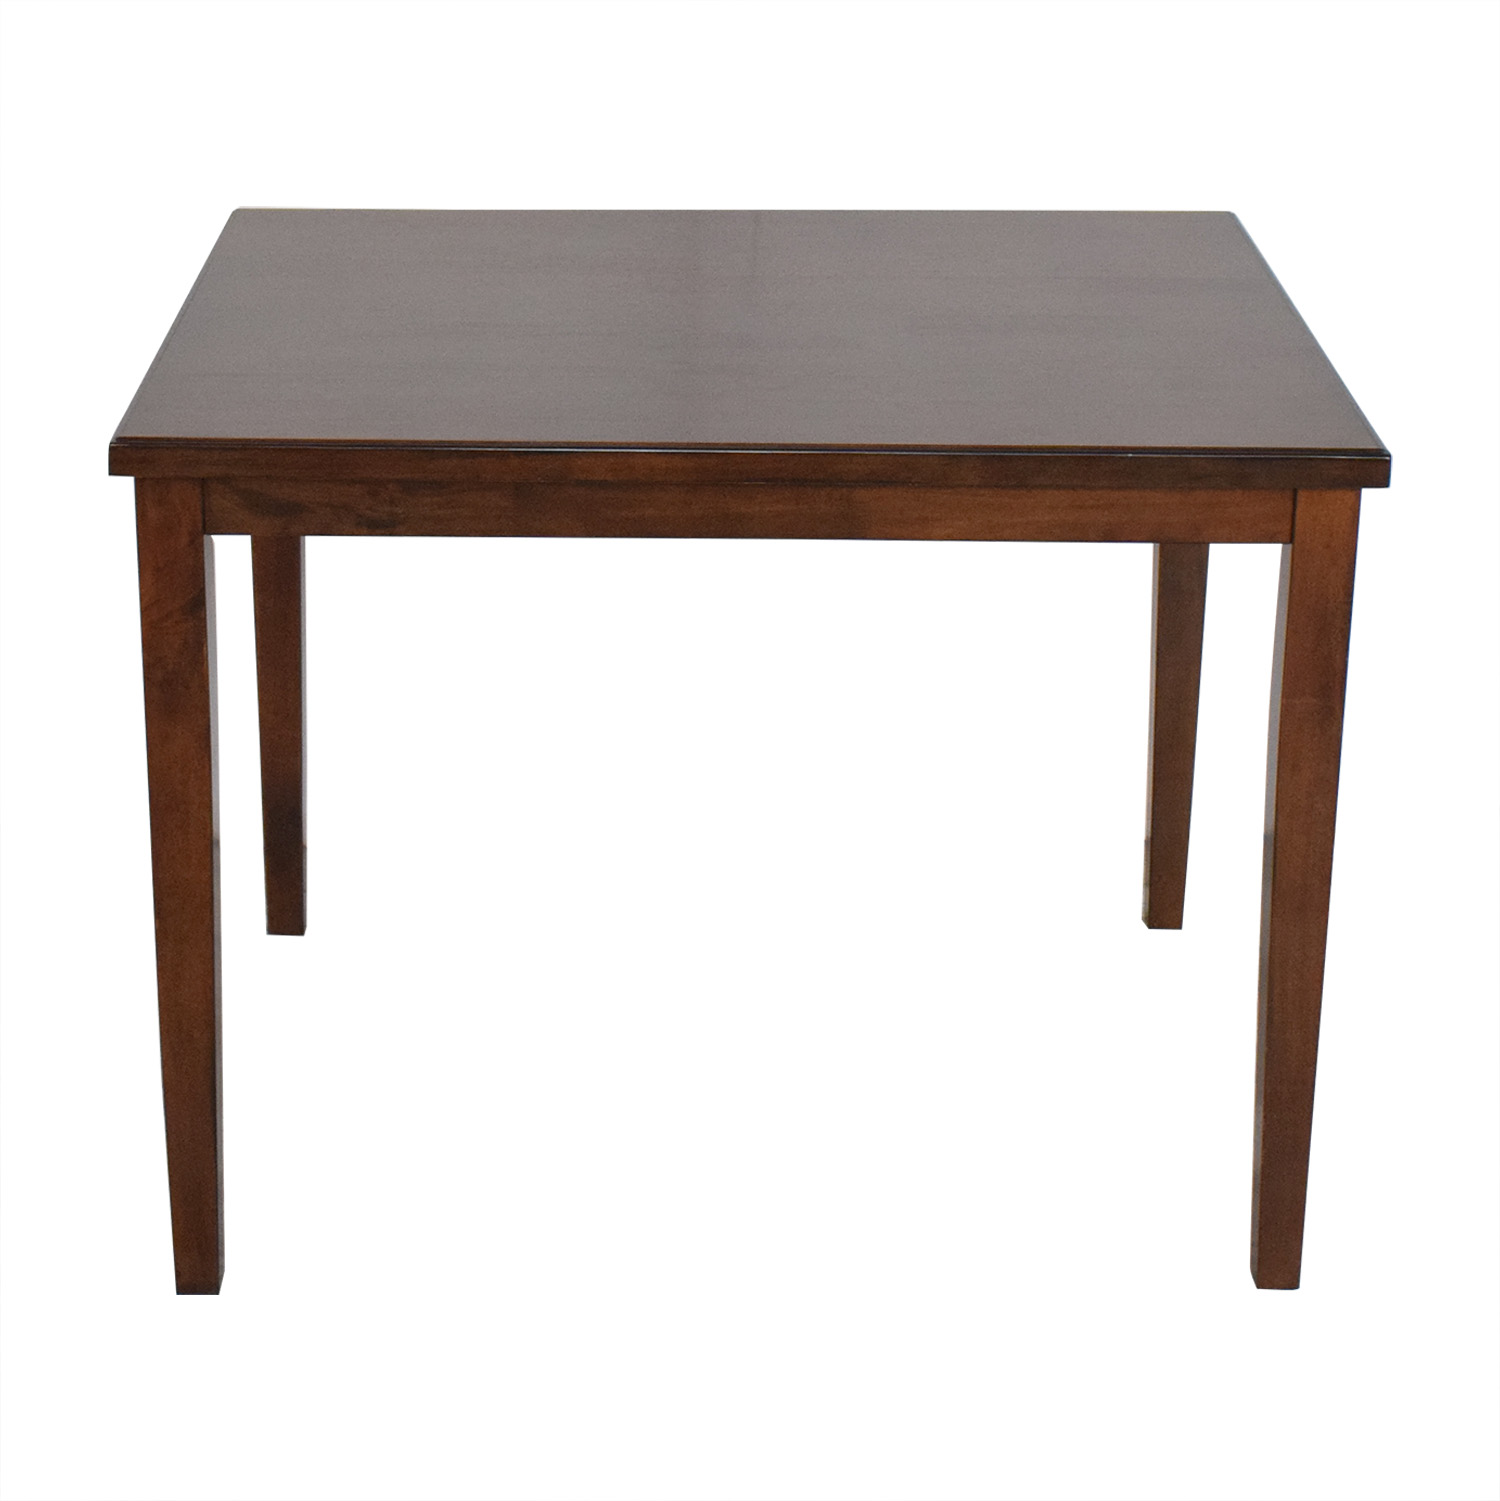 buy A-America Wood Furniture A-America Dining Table online